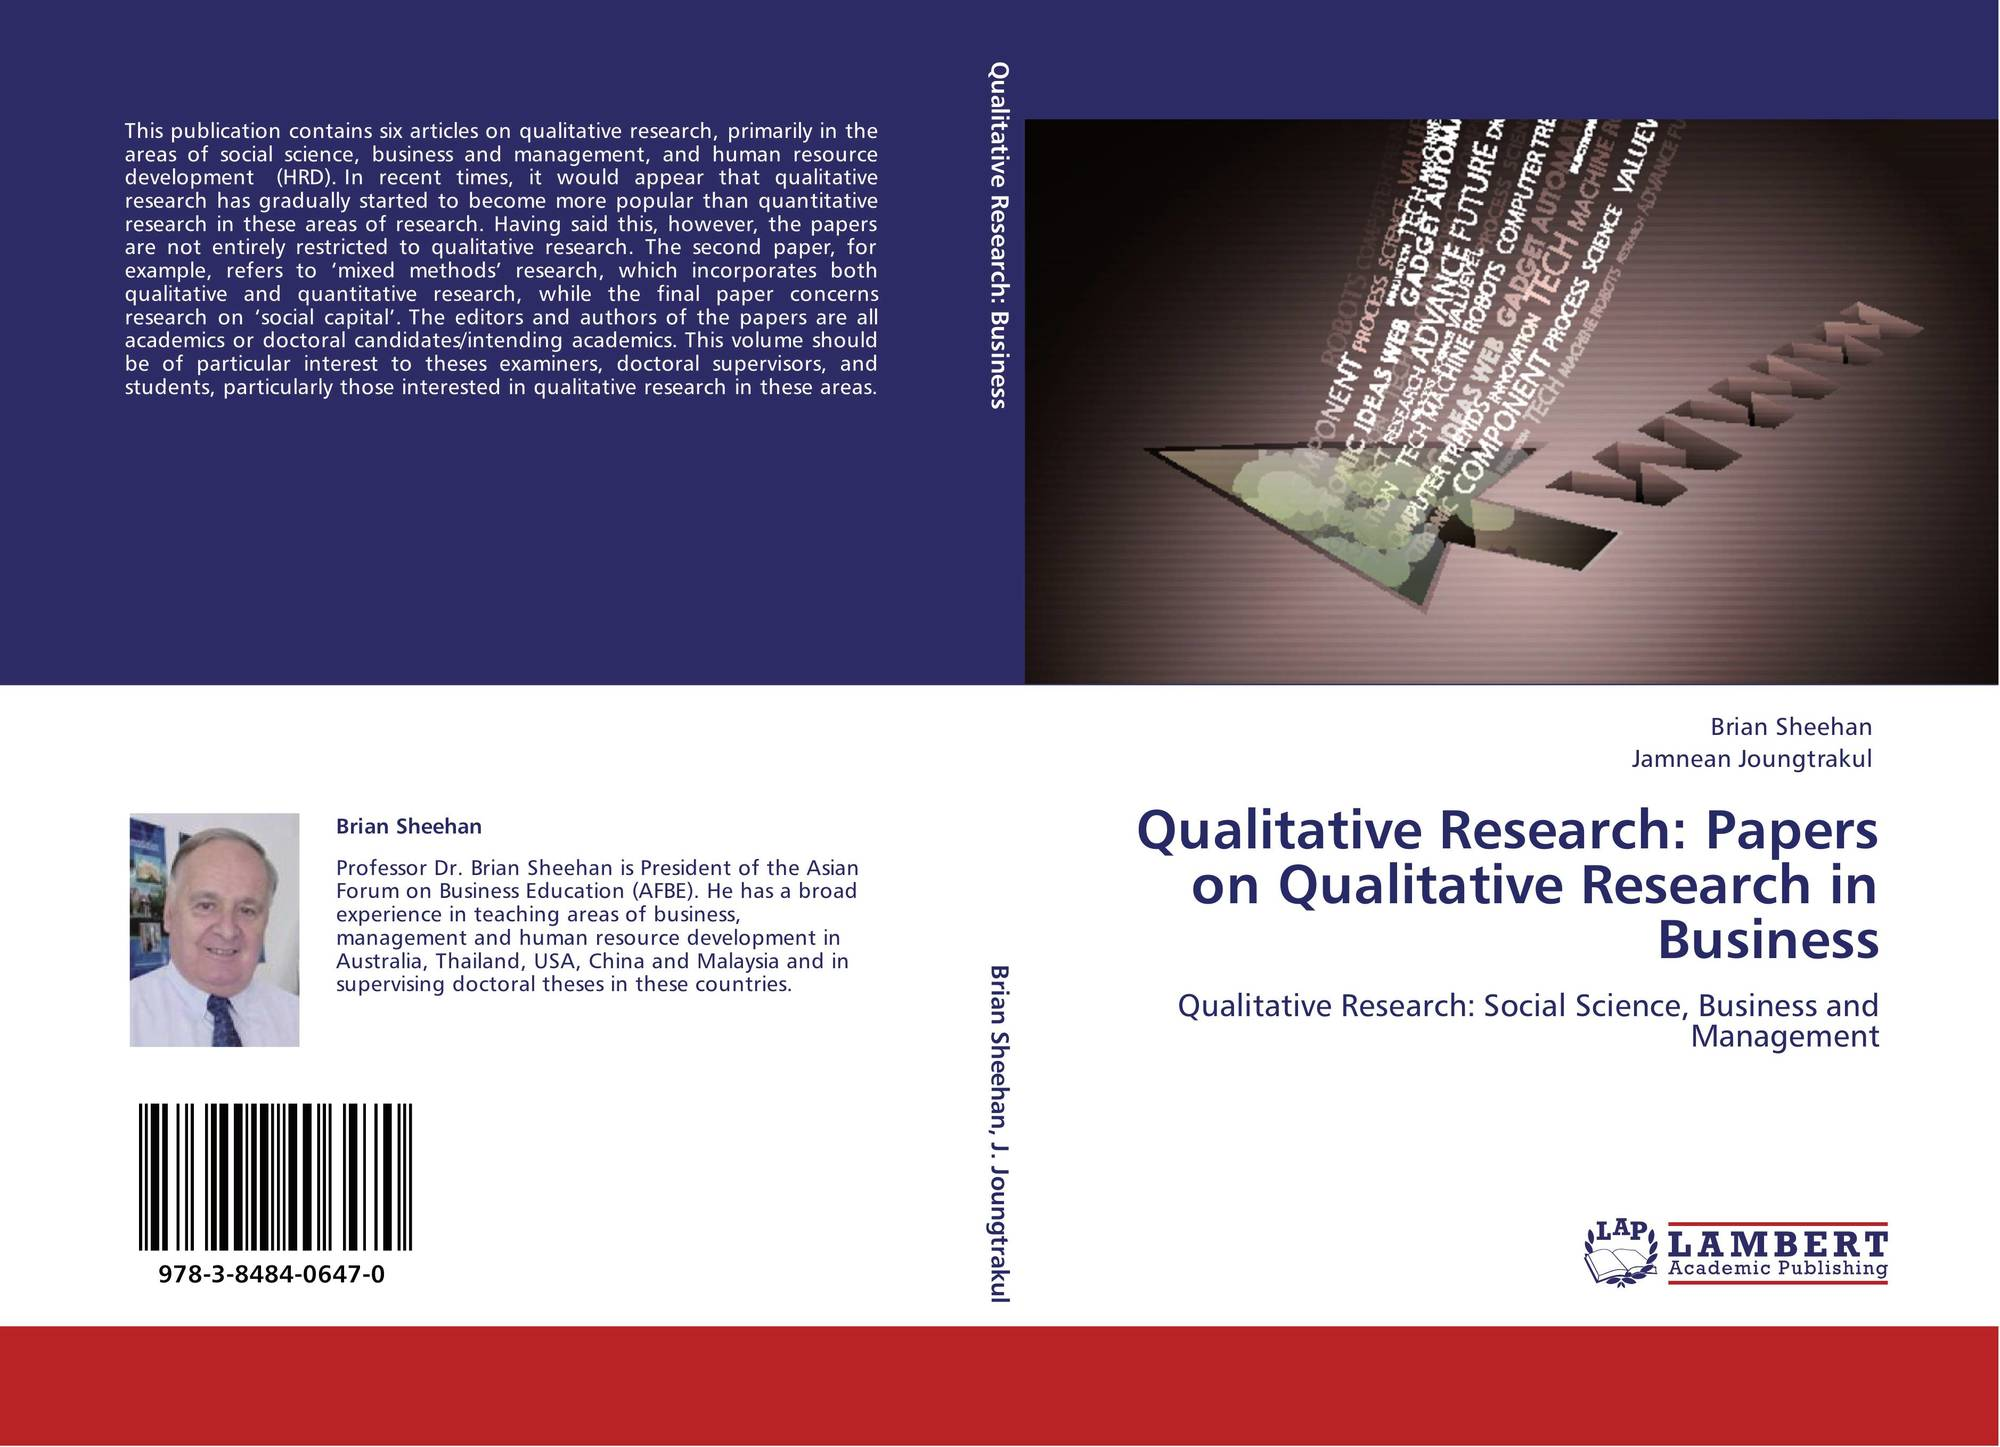 quantitative research paper about business pdf